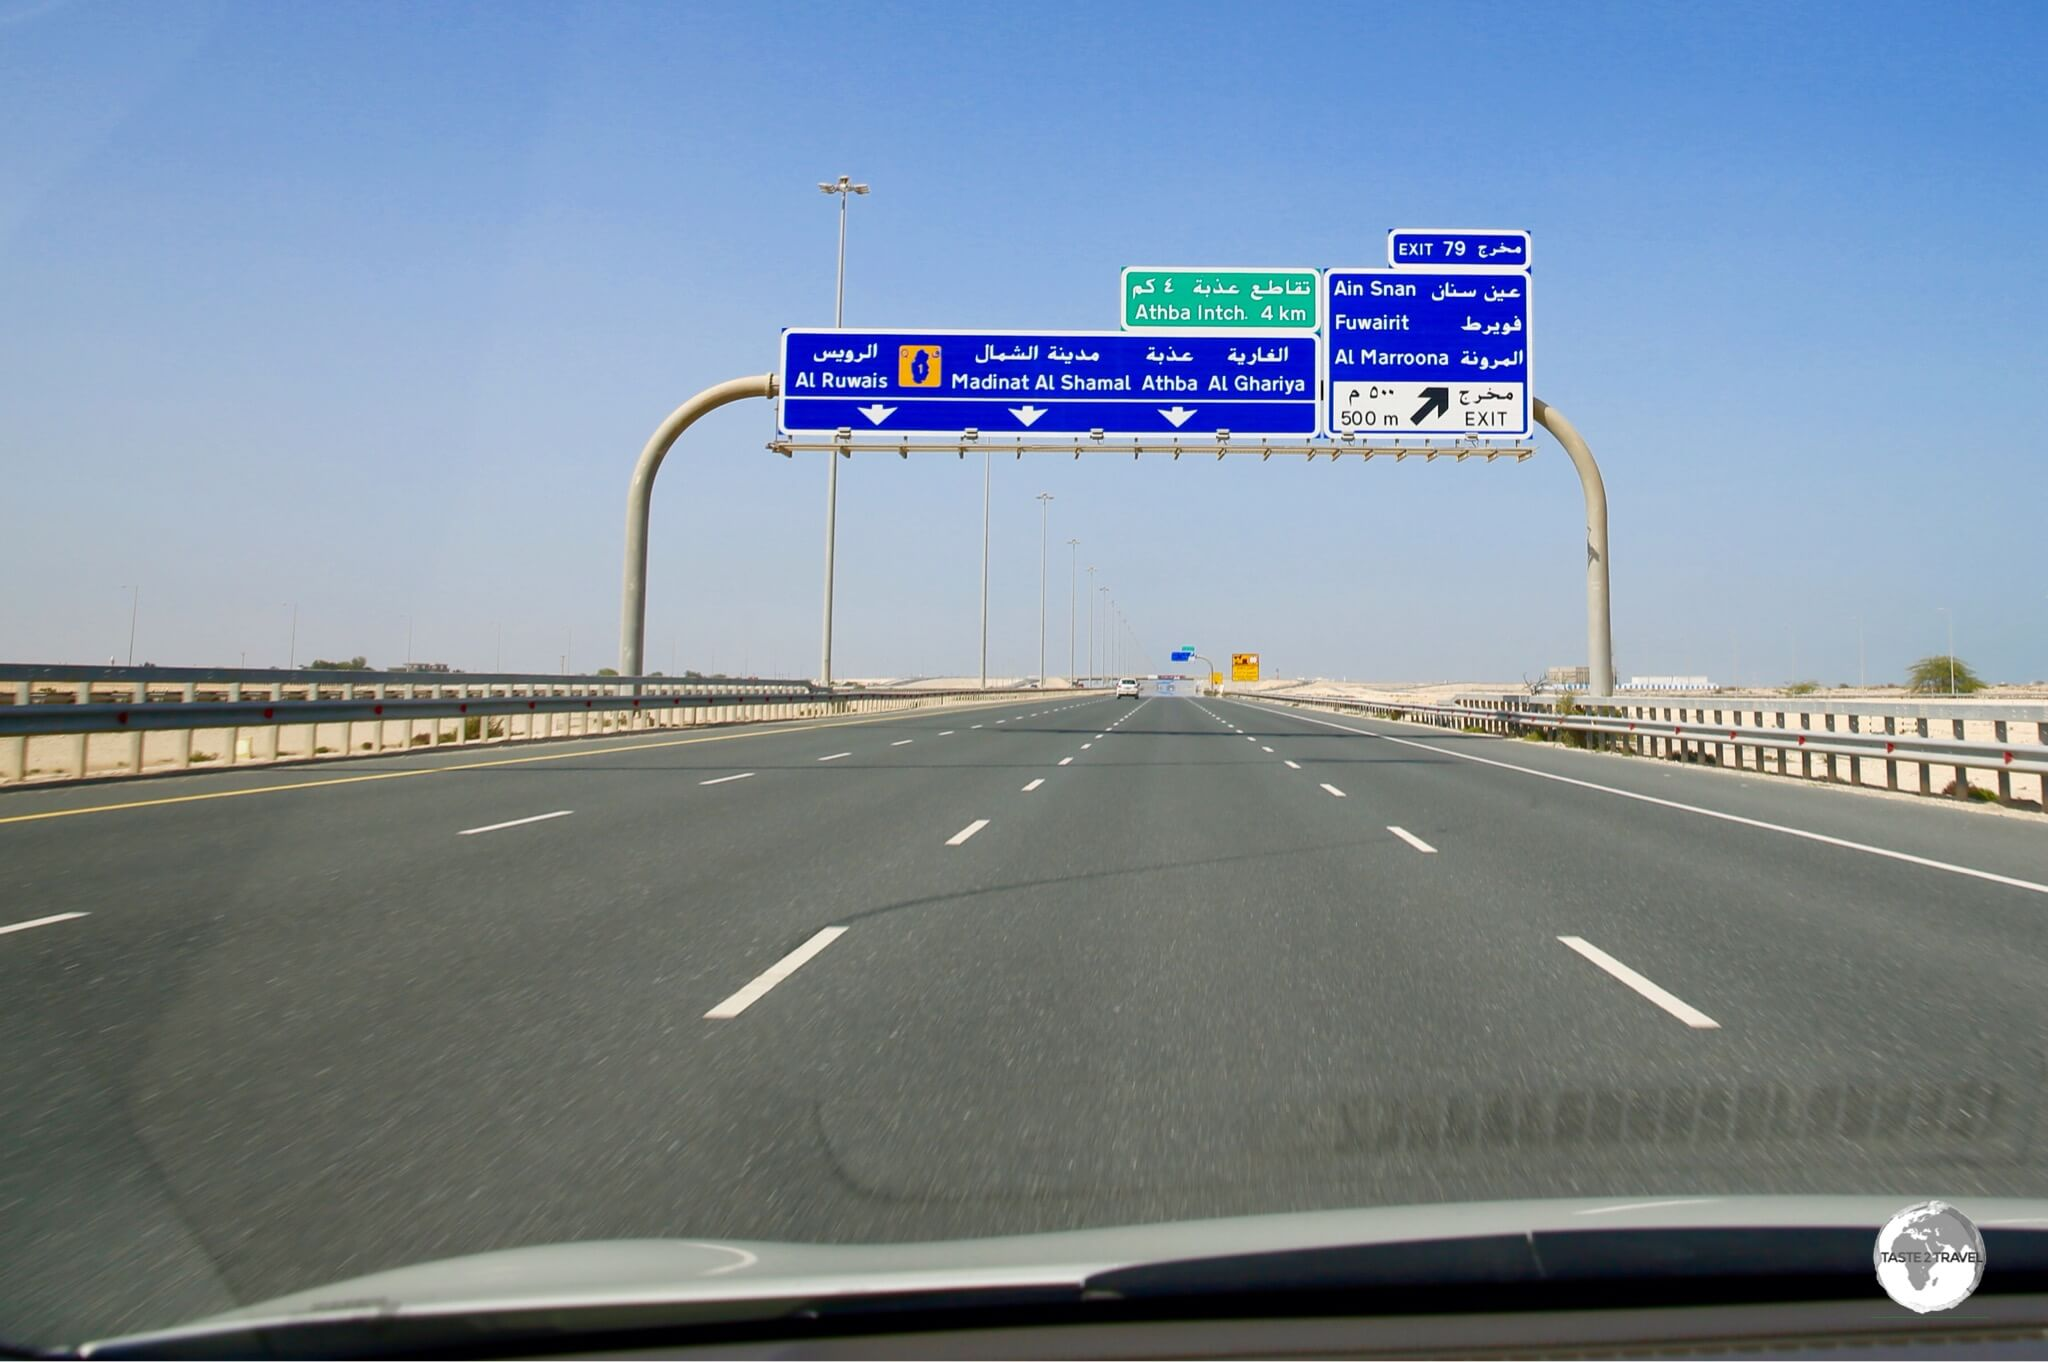 On the road to Al Ruwais.